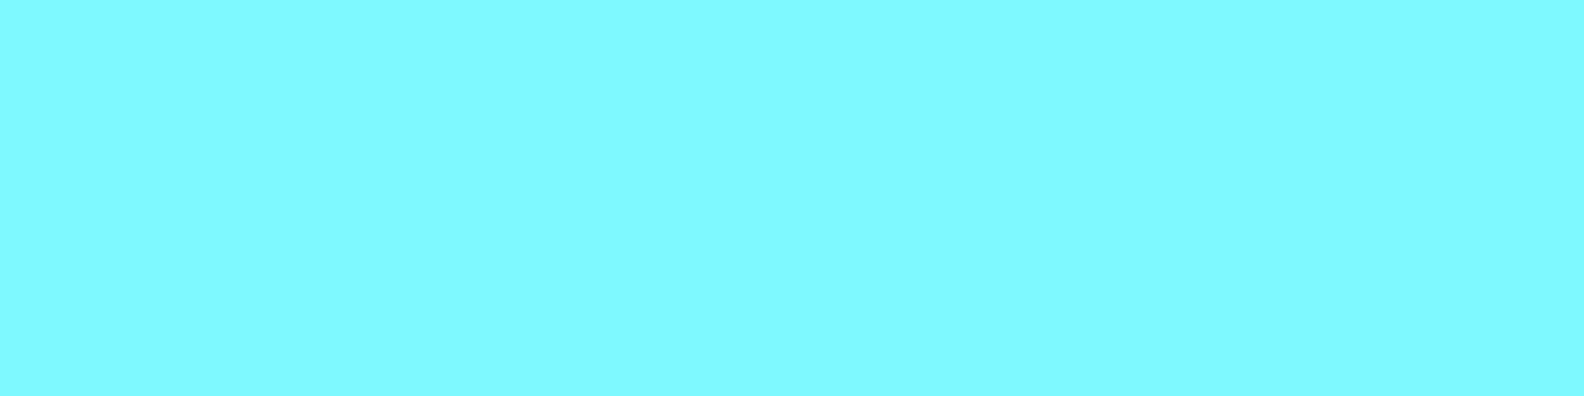 1584x396 Electric Blue Solid Color Background